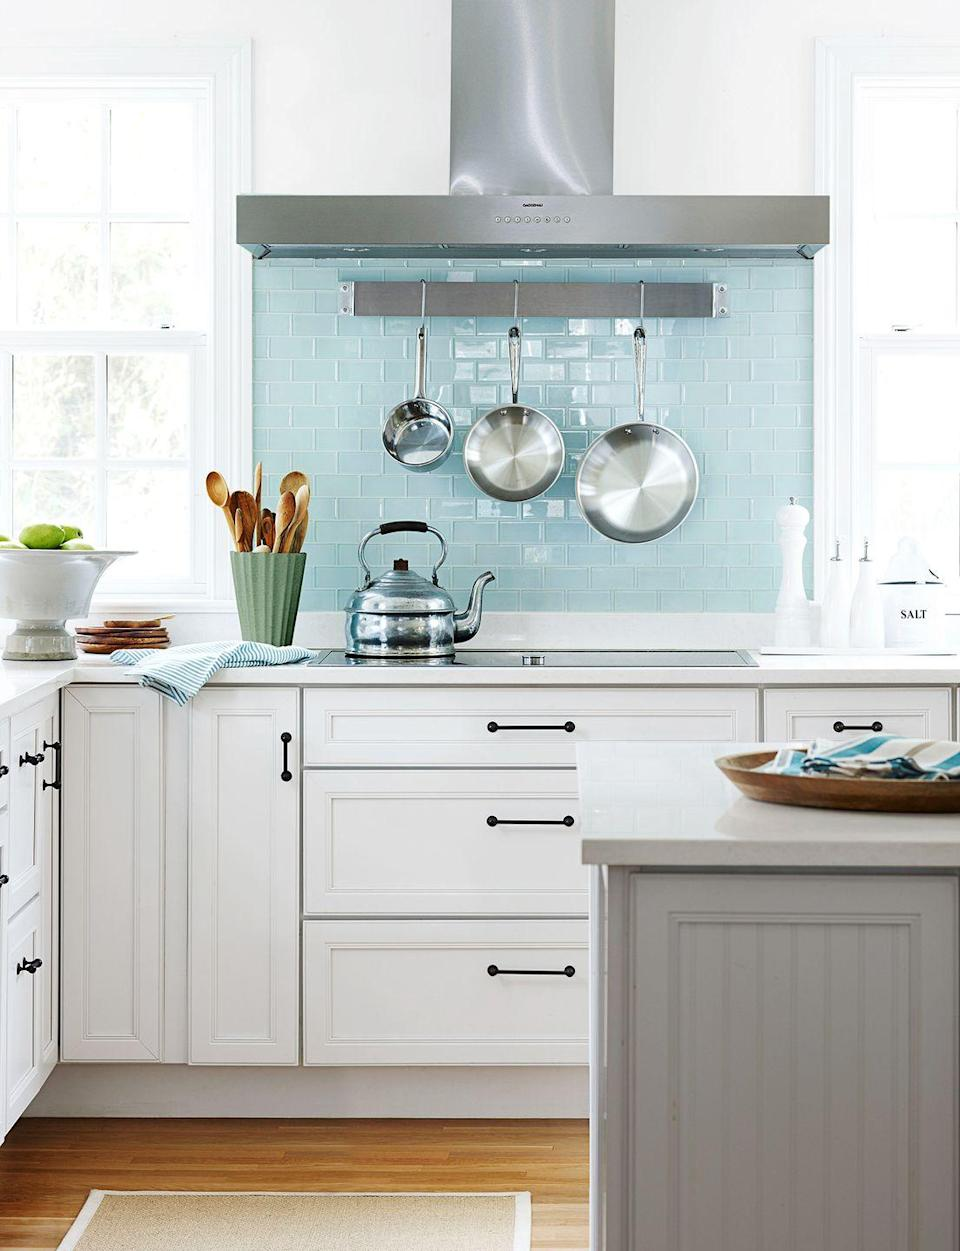 <p>Thanks to high-gloss blue tiles, this compact kitchen is filled with style and personality. </p>